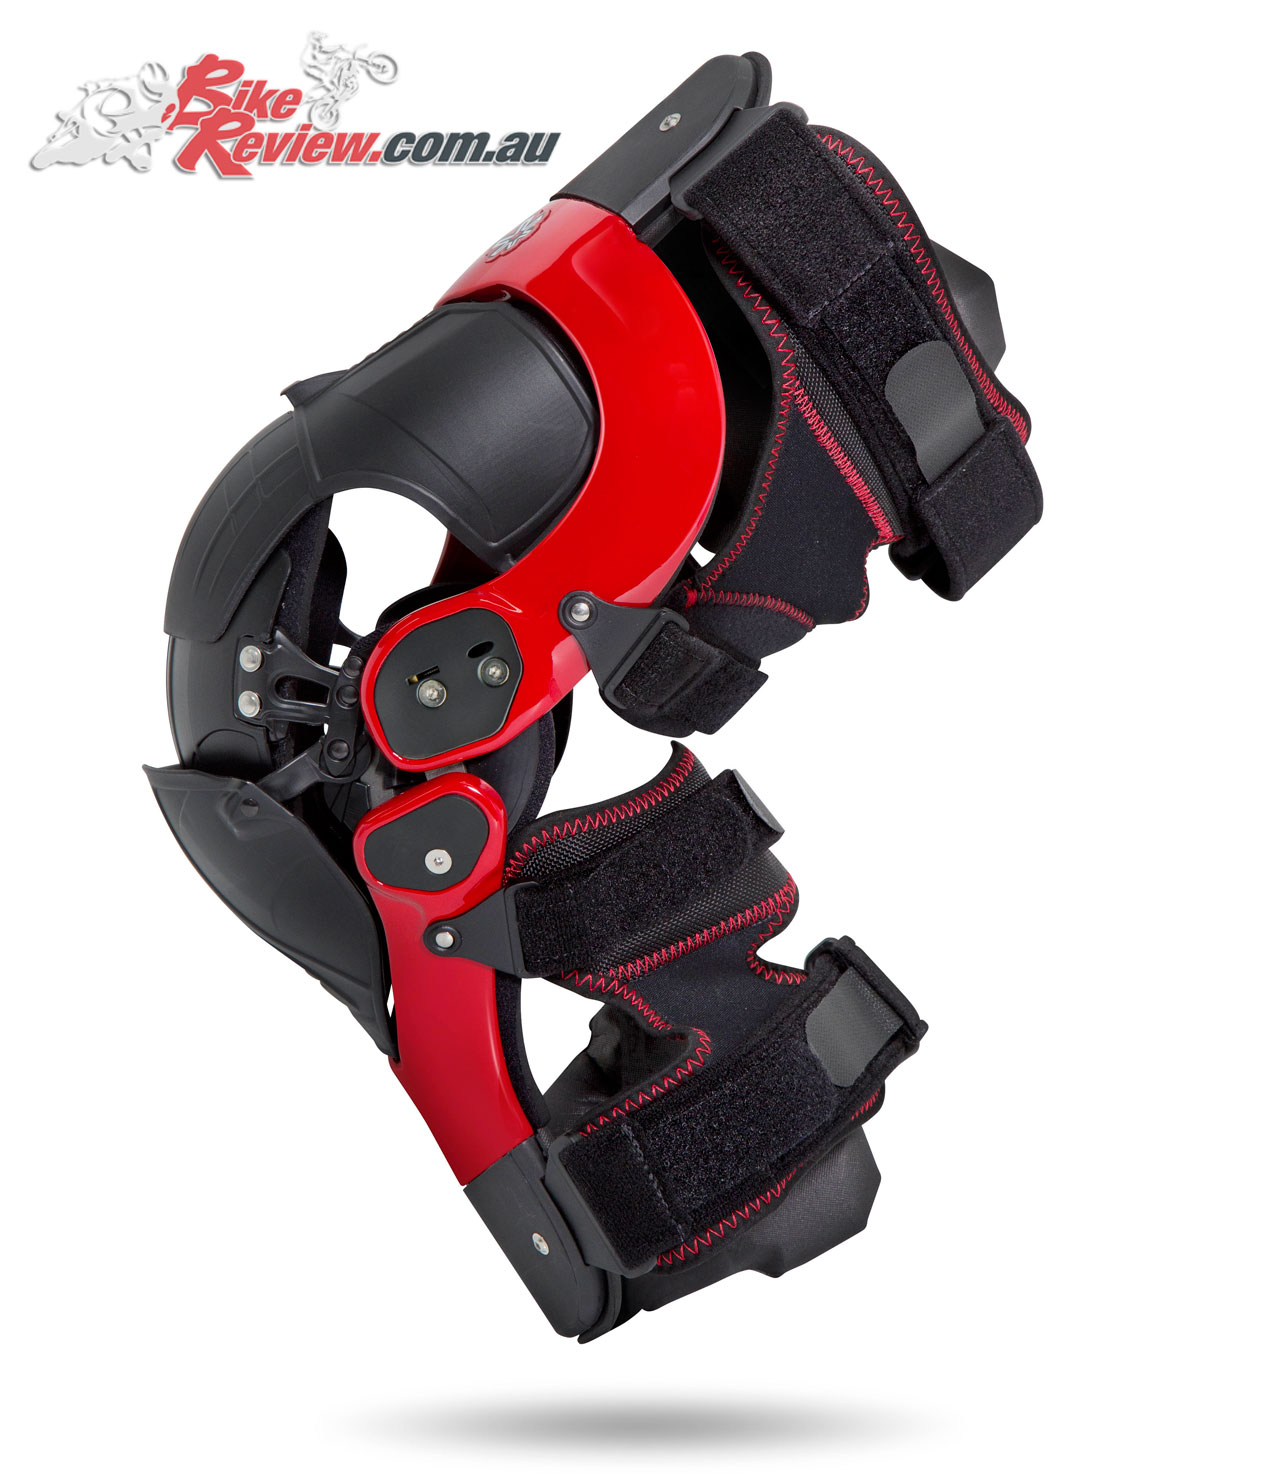 New Product Asterisk Ultra Cell 20 Knee Brace - Bike Review-7710